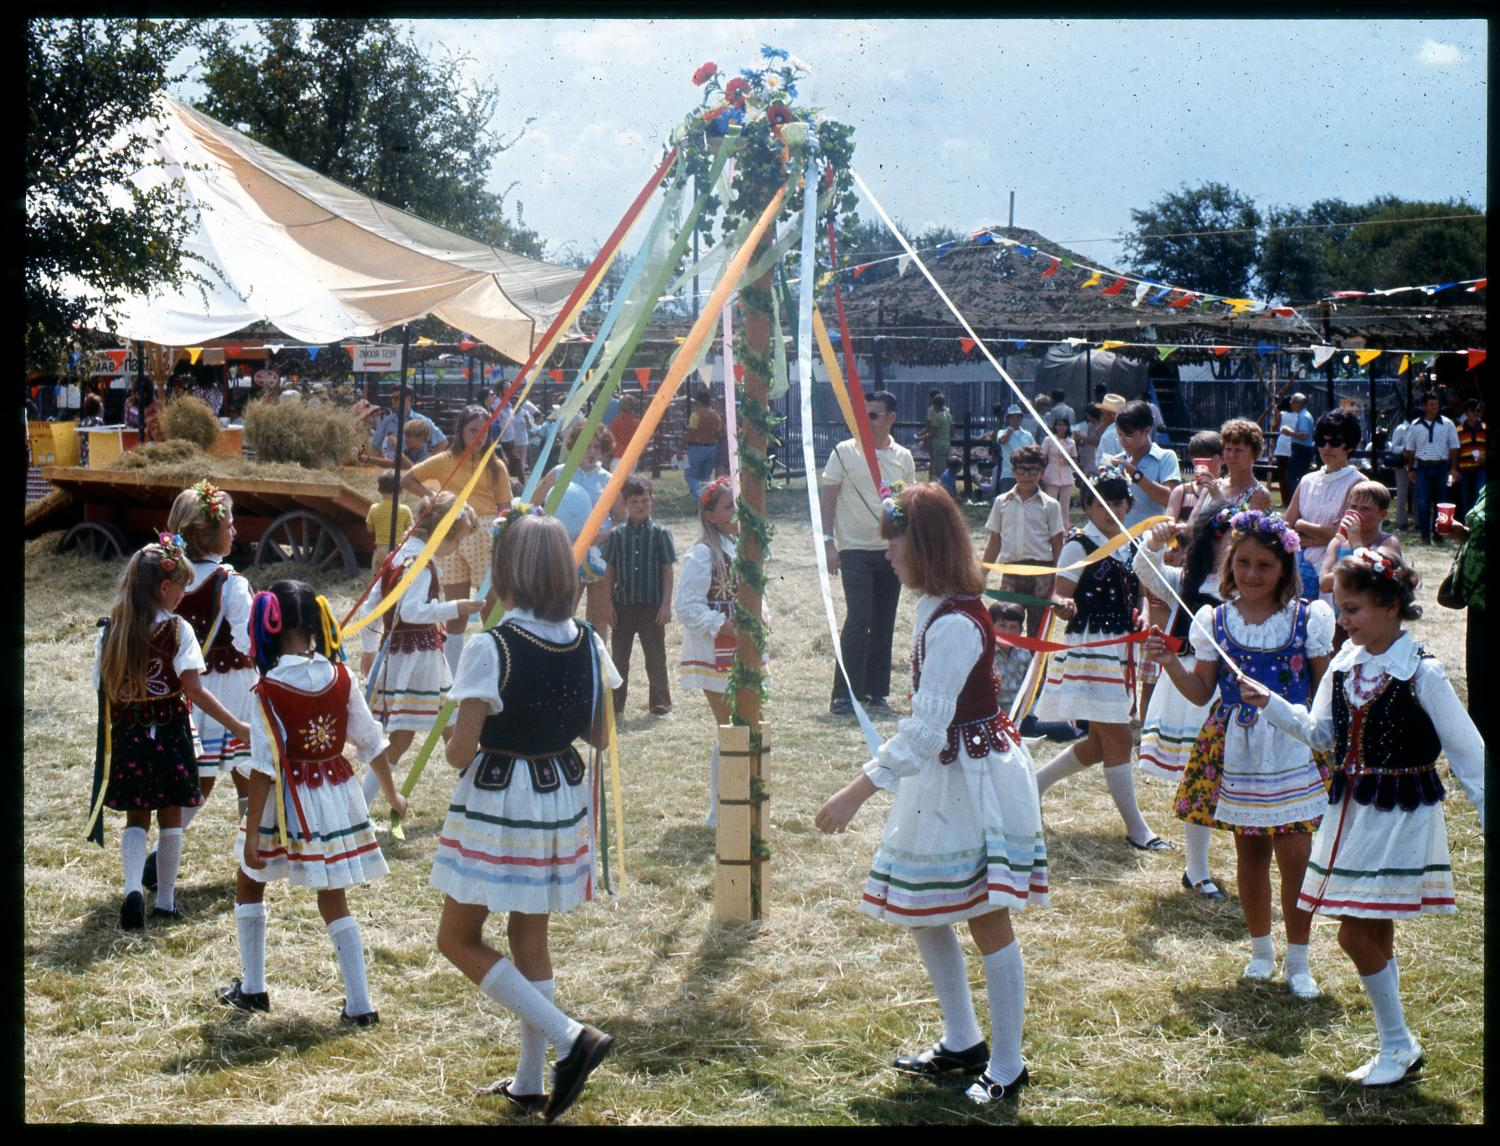 [Polish Children Around the Maypole], Photograph of Polish children dancing around the maypole at the Texas Folklife Festival. The maypole is erected outdoors in a grassy clearing. It is decorated with leafy garland spiraling up to the top where red, white, and blue flowers are displayed. Colored ribbons stream from the top of the pole down to the hands of the children walking clockwise around the pole. All of the children are girls, wearing white knee-high socks and white dresses with horizontal colored stripes near the hem. Over their dresses they are wearing red, black or blue vests embroidered with gold or silver decoration. Flowers or ribbons adorn each of their heads. A few people are standing in the background, watching.,